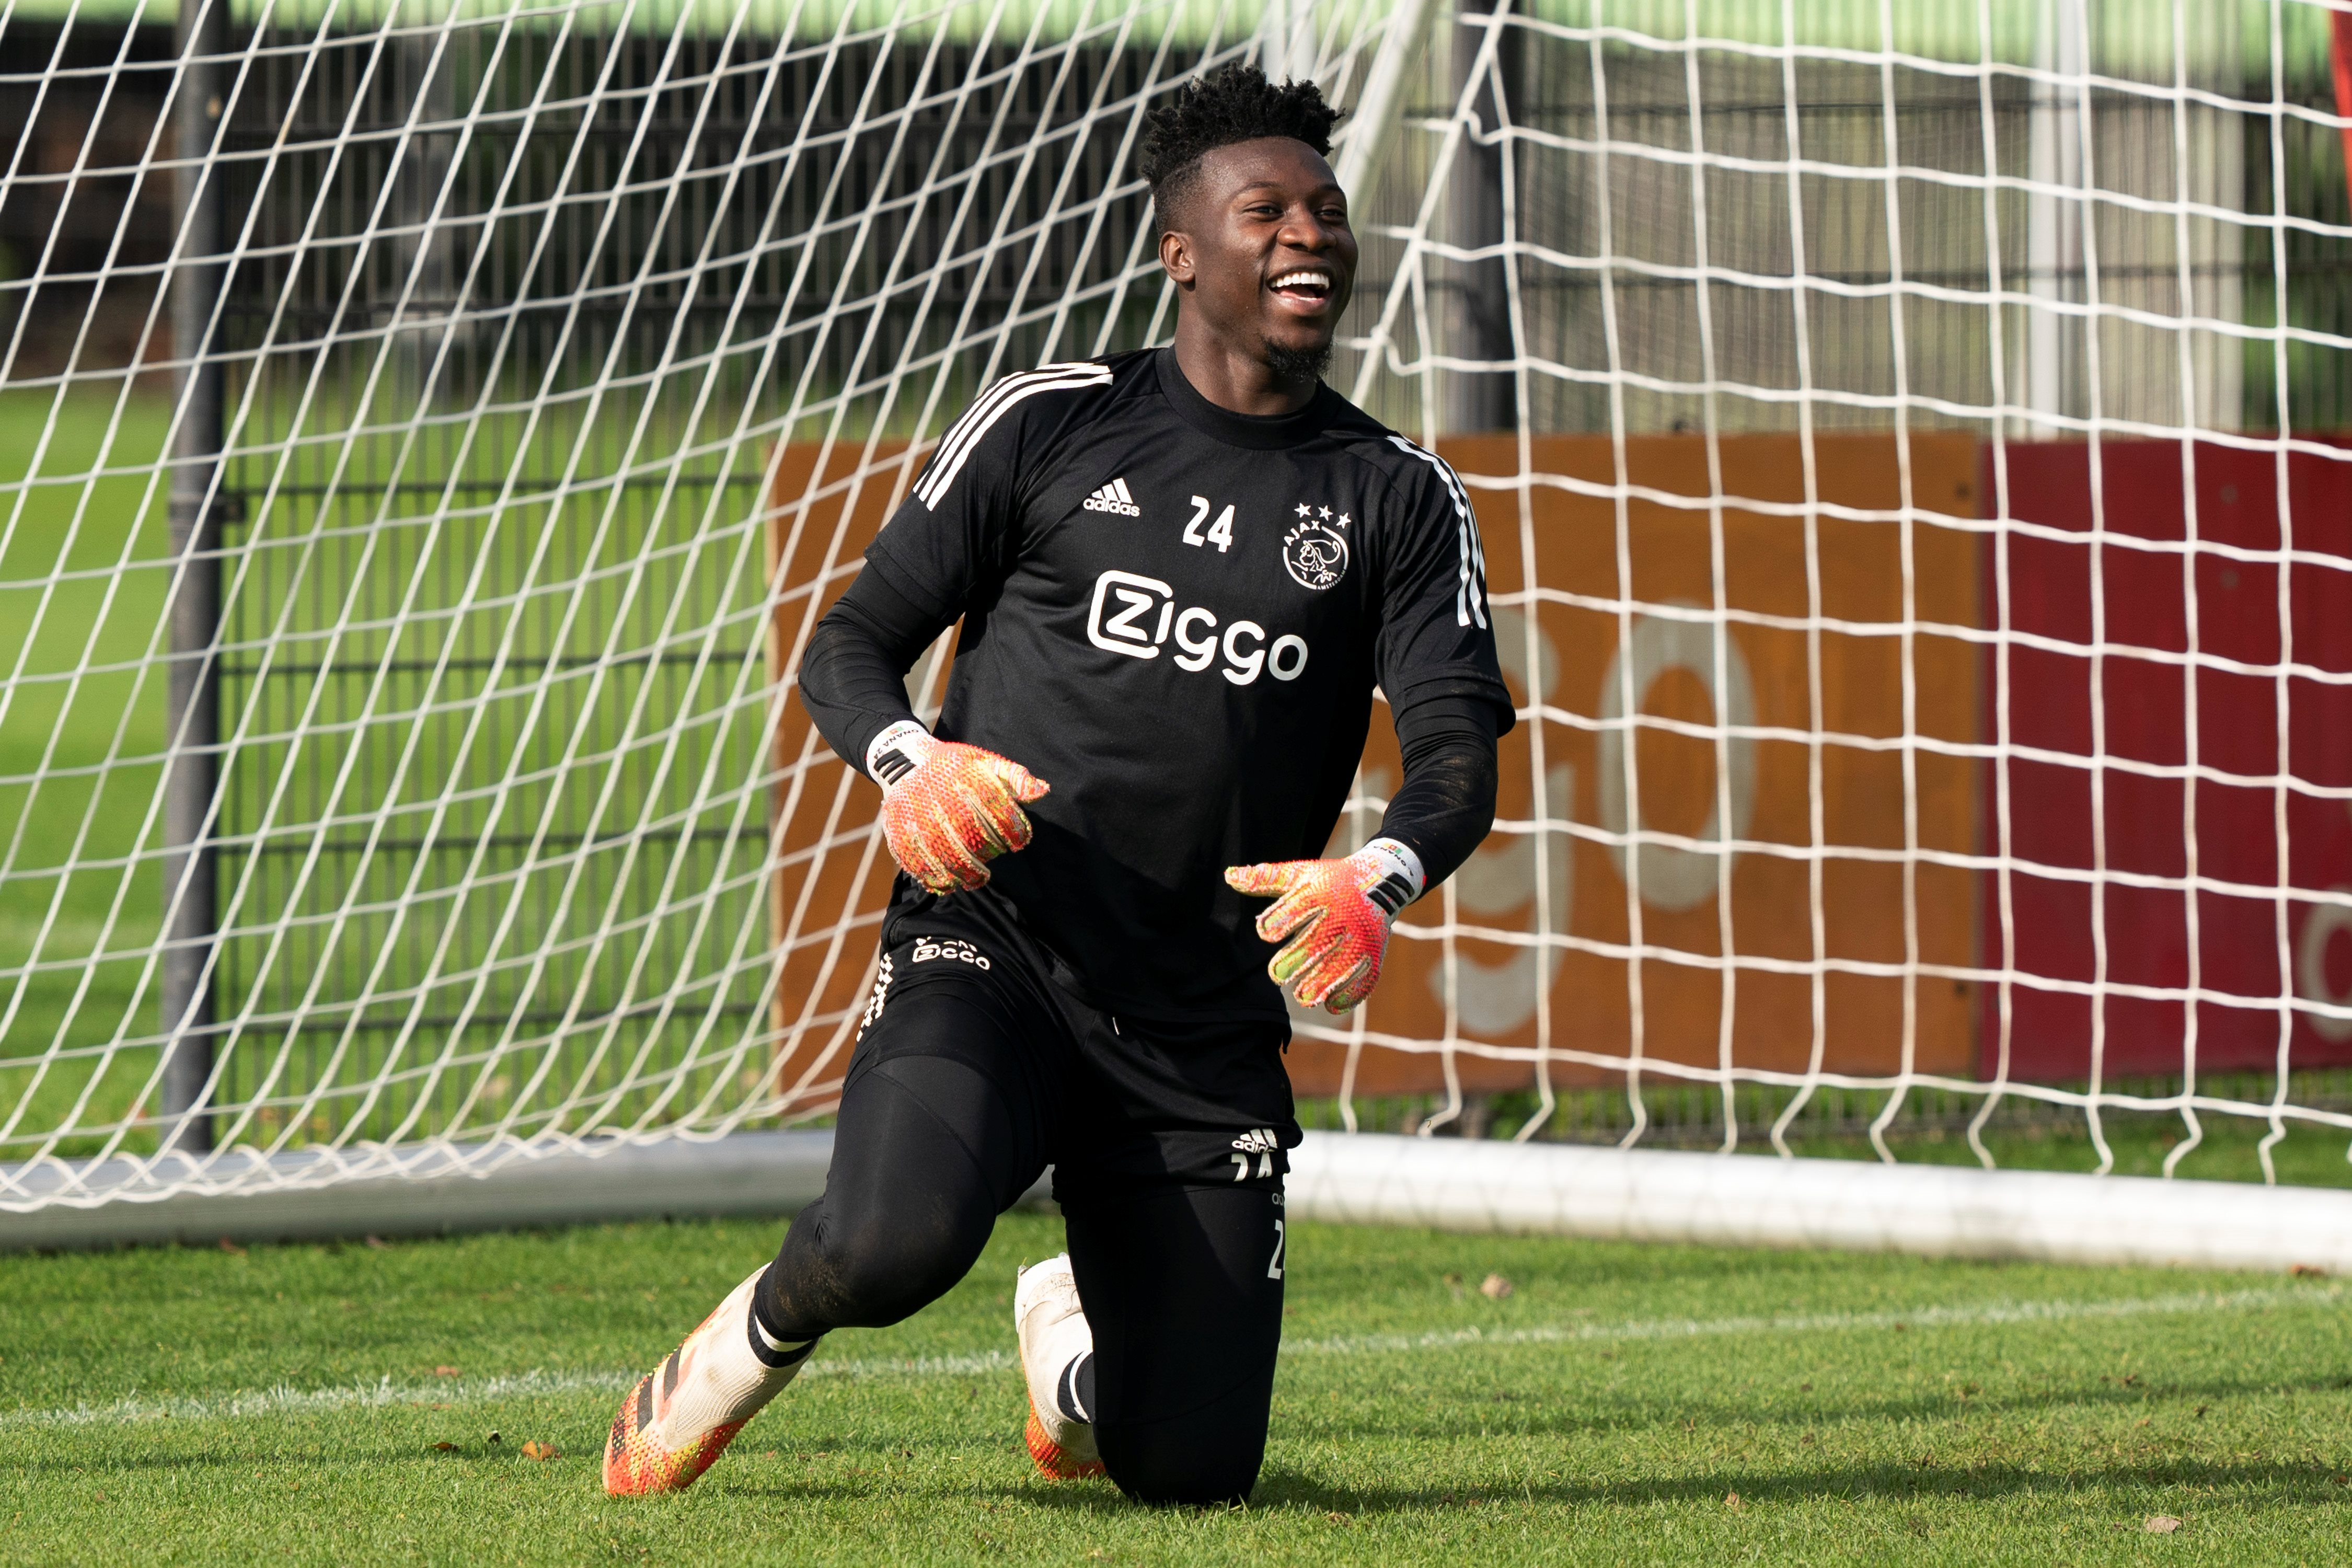 Onana Training Day